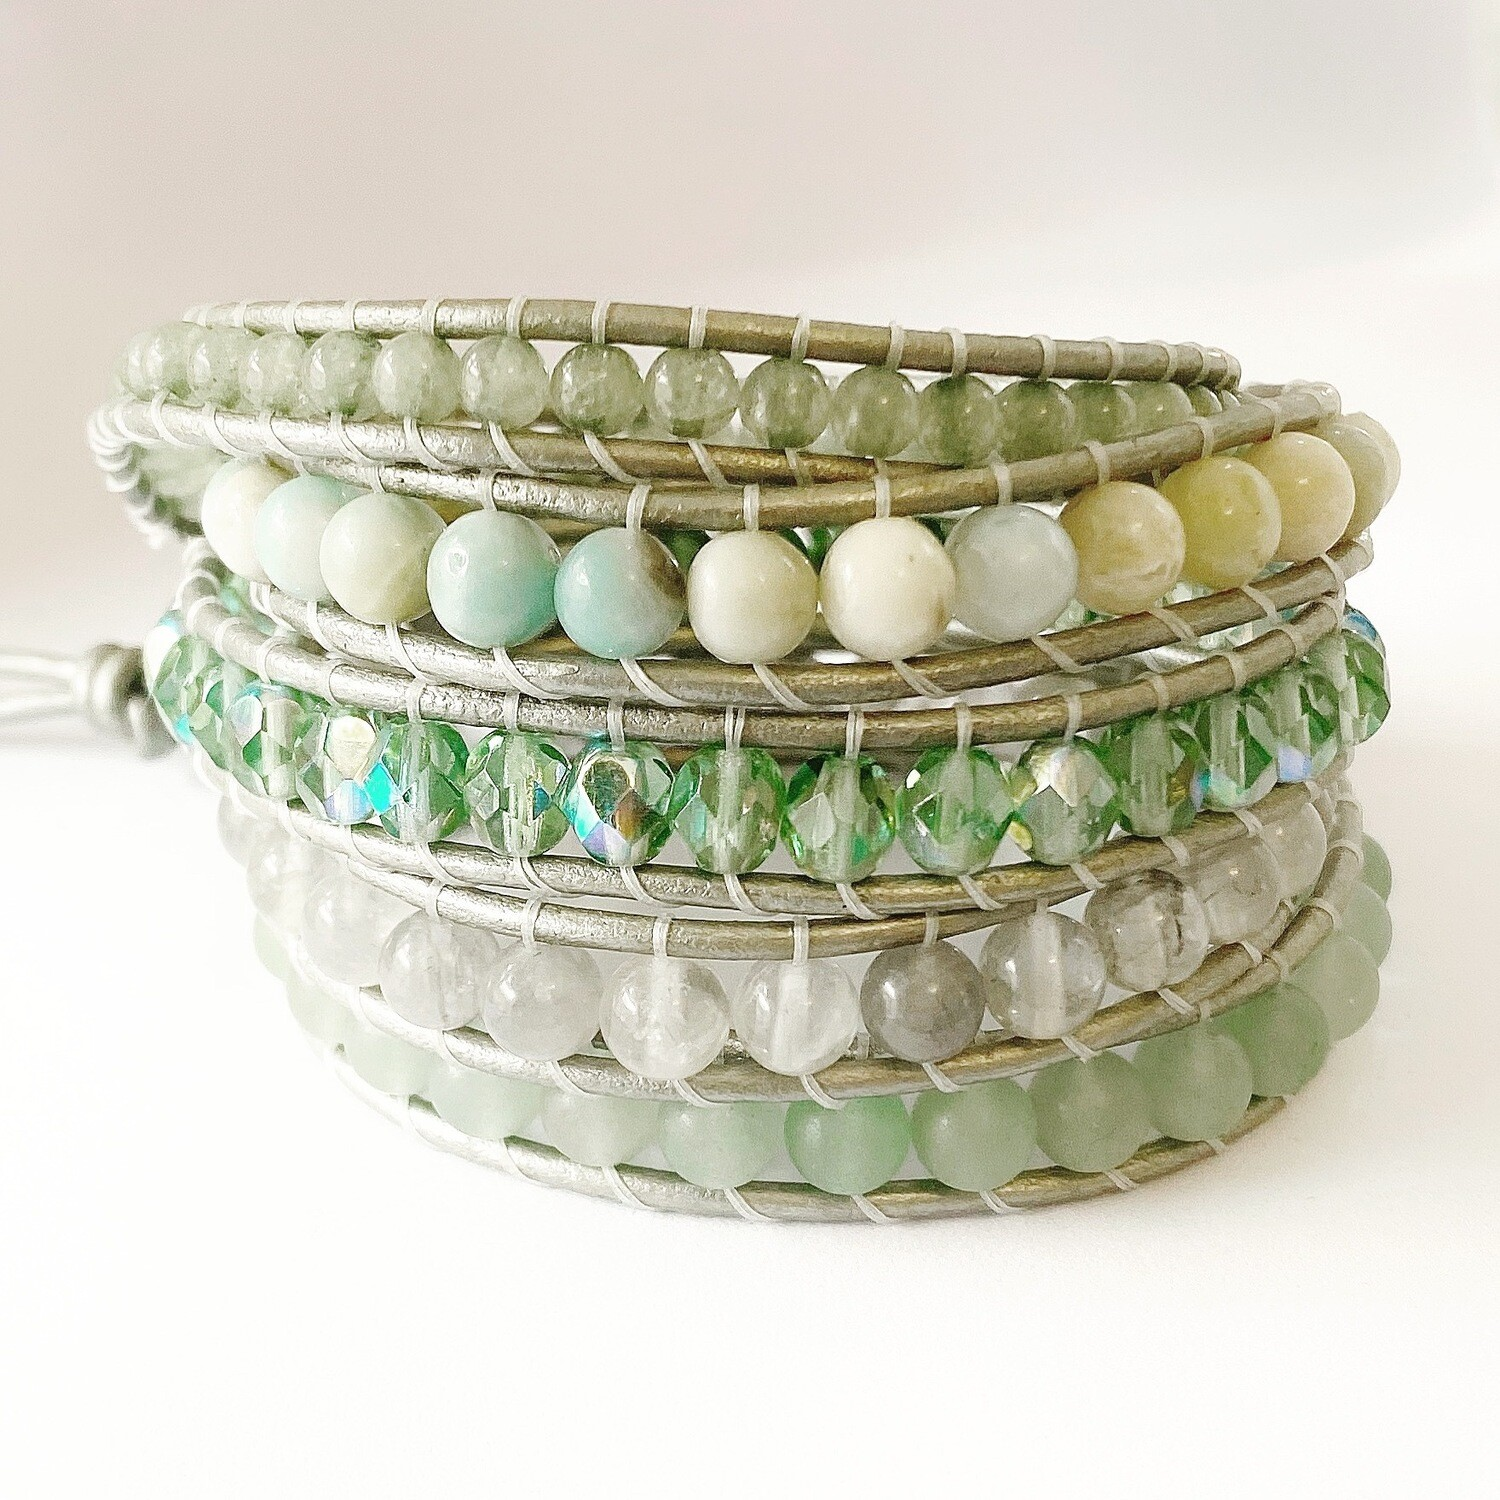 Quartz, Amazonite Wrap Bracelet 5 Wrap